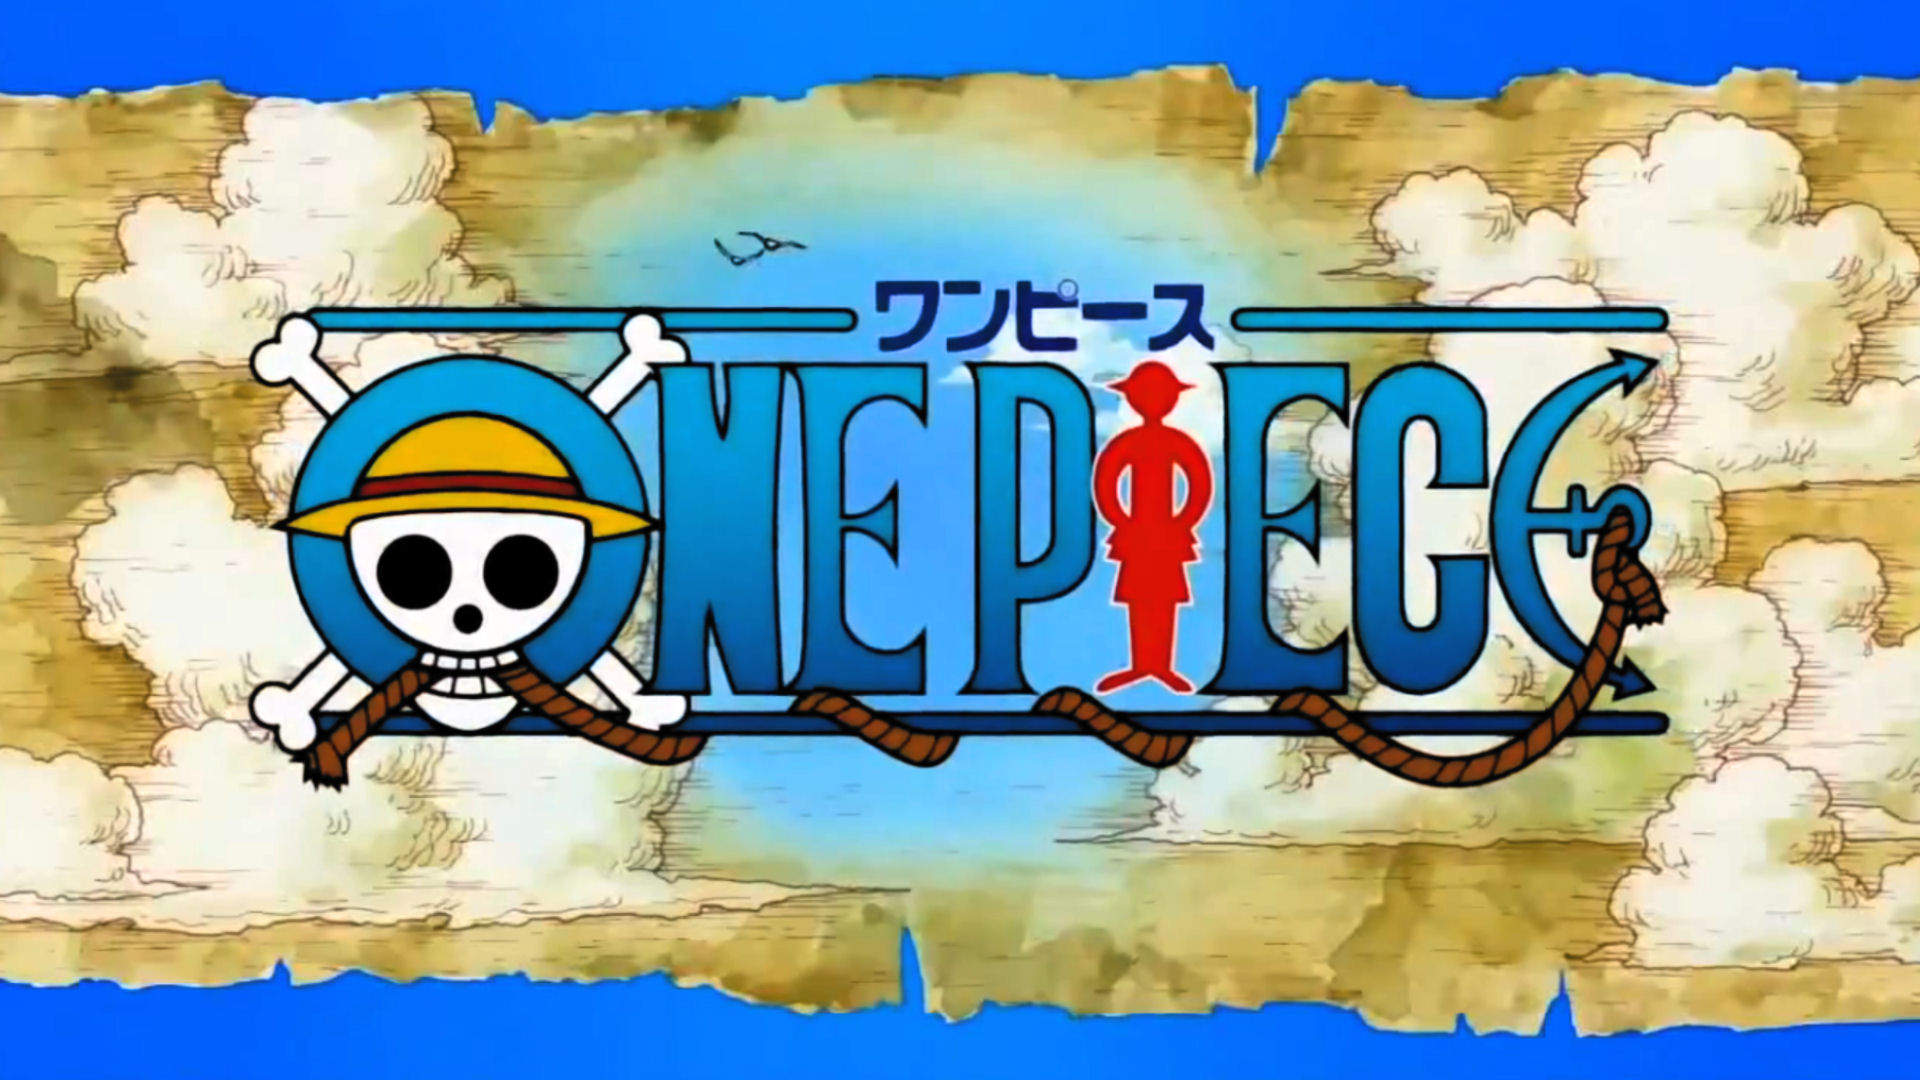 One Piece Wallpaper Iphone Background One Piece Wallpapers For Laptop Anime 1920x1080 Wallpaper Teahub Io